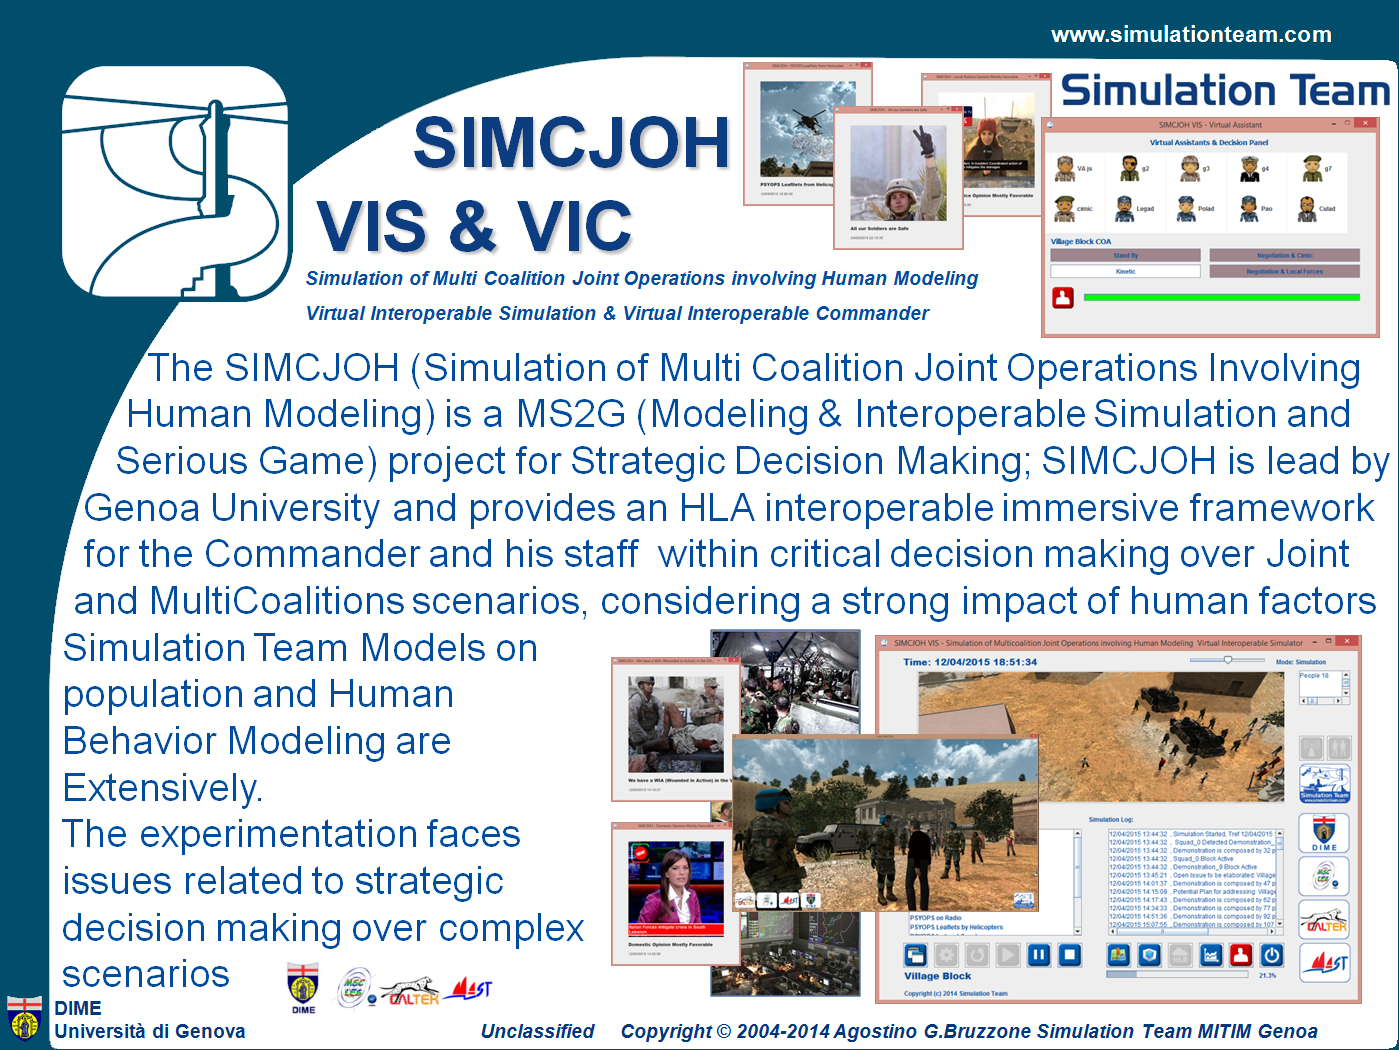 SIMCJOH VIS & VIC Simulation of Multi Coalition Joint Operations involving Human Modeling - Virtual Interoperable Simulation & Virtual Interoperable Commander